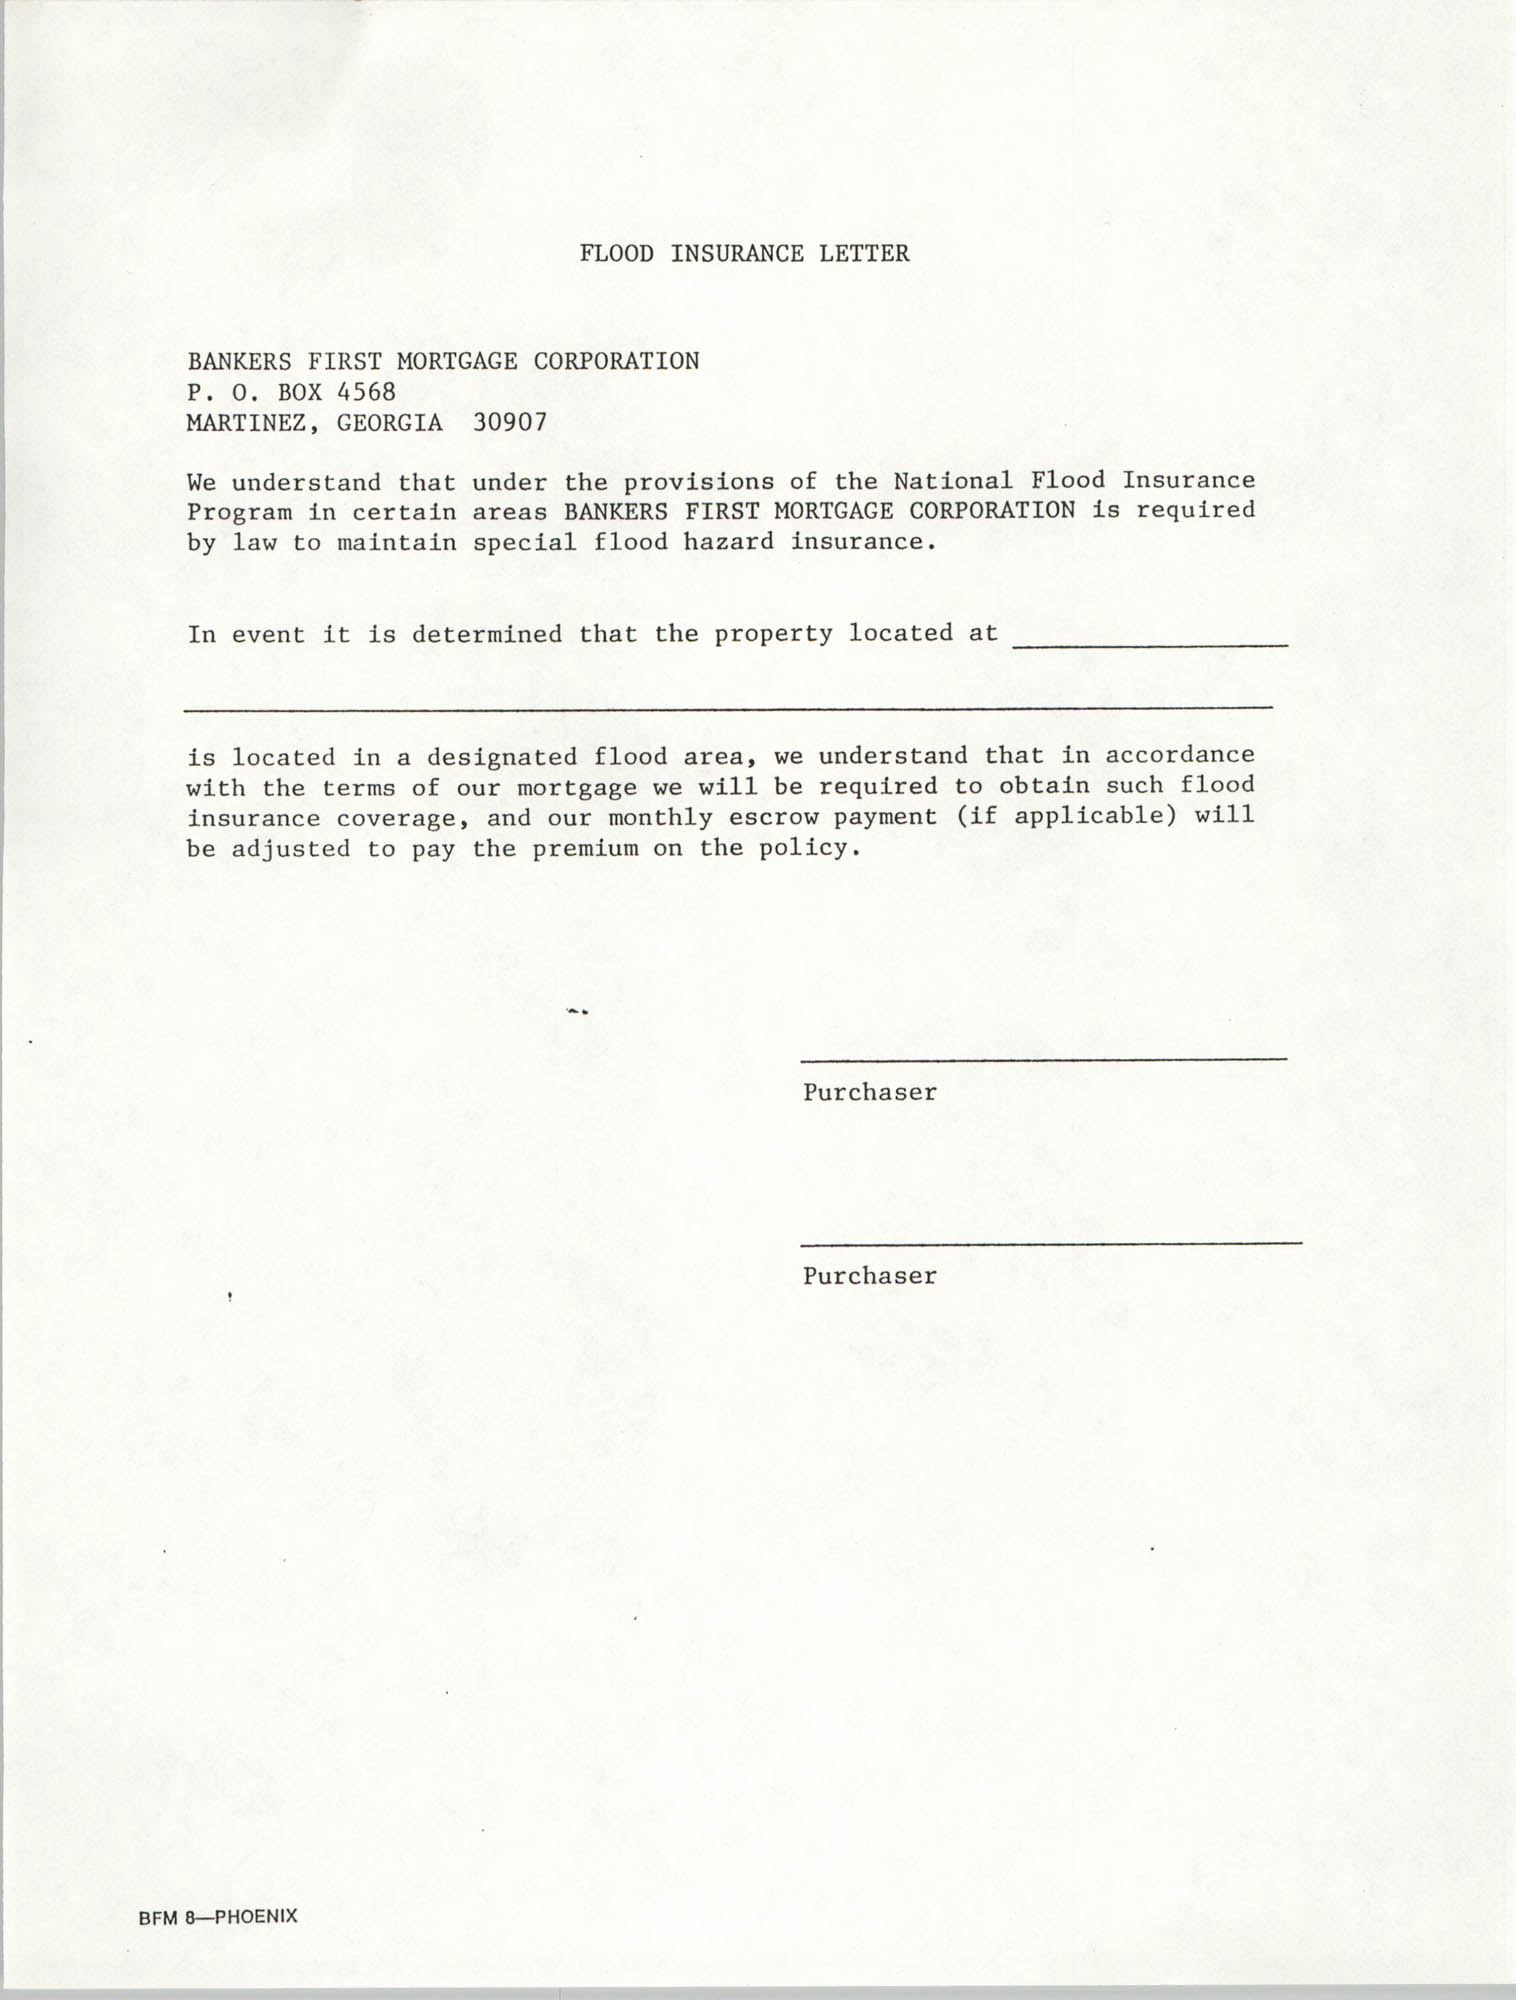 Flood Insurance Letter, Bankers First Mortgage Corporation